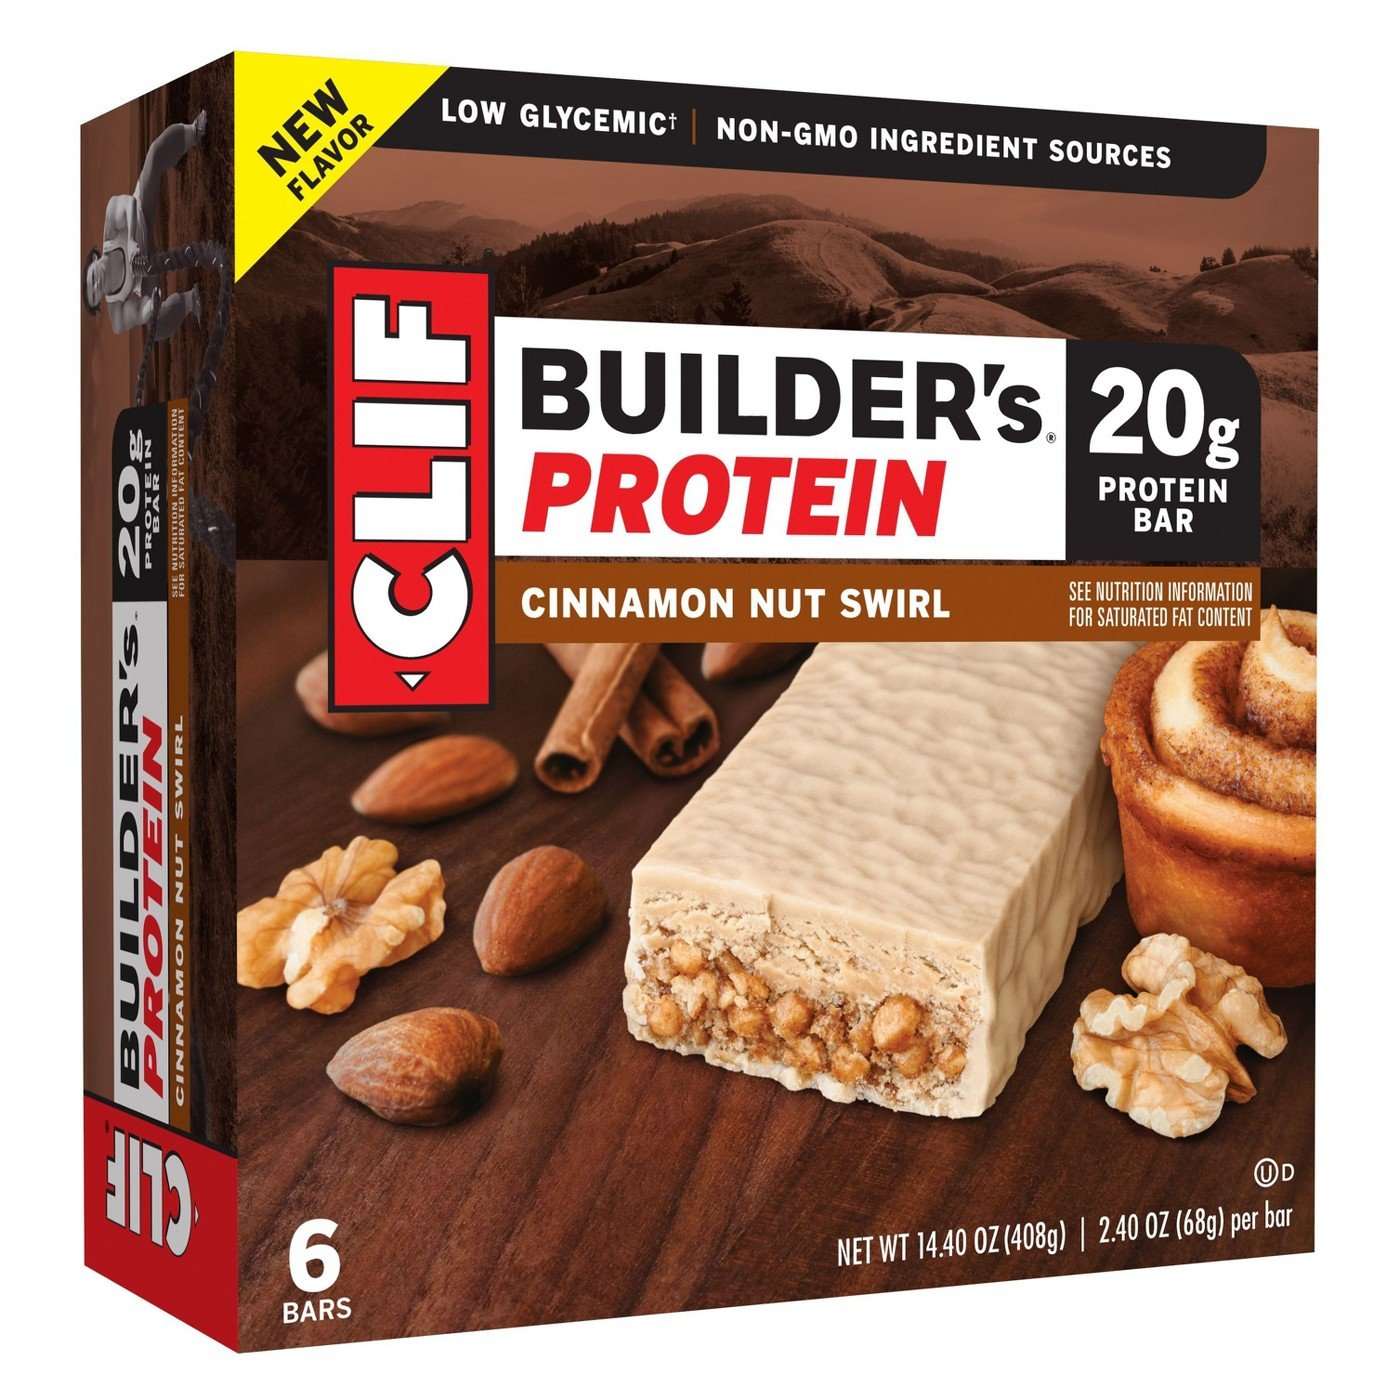 Clif Builder's Protein Bar Cinnamon Nut Swirl 14.4oz 2.4oz x 6 bar